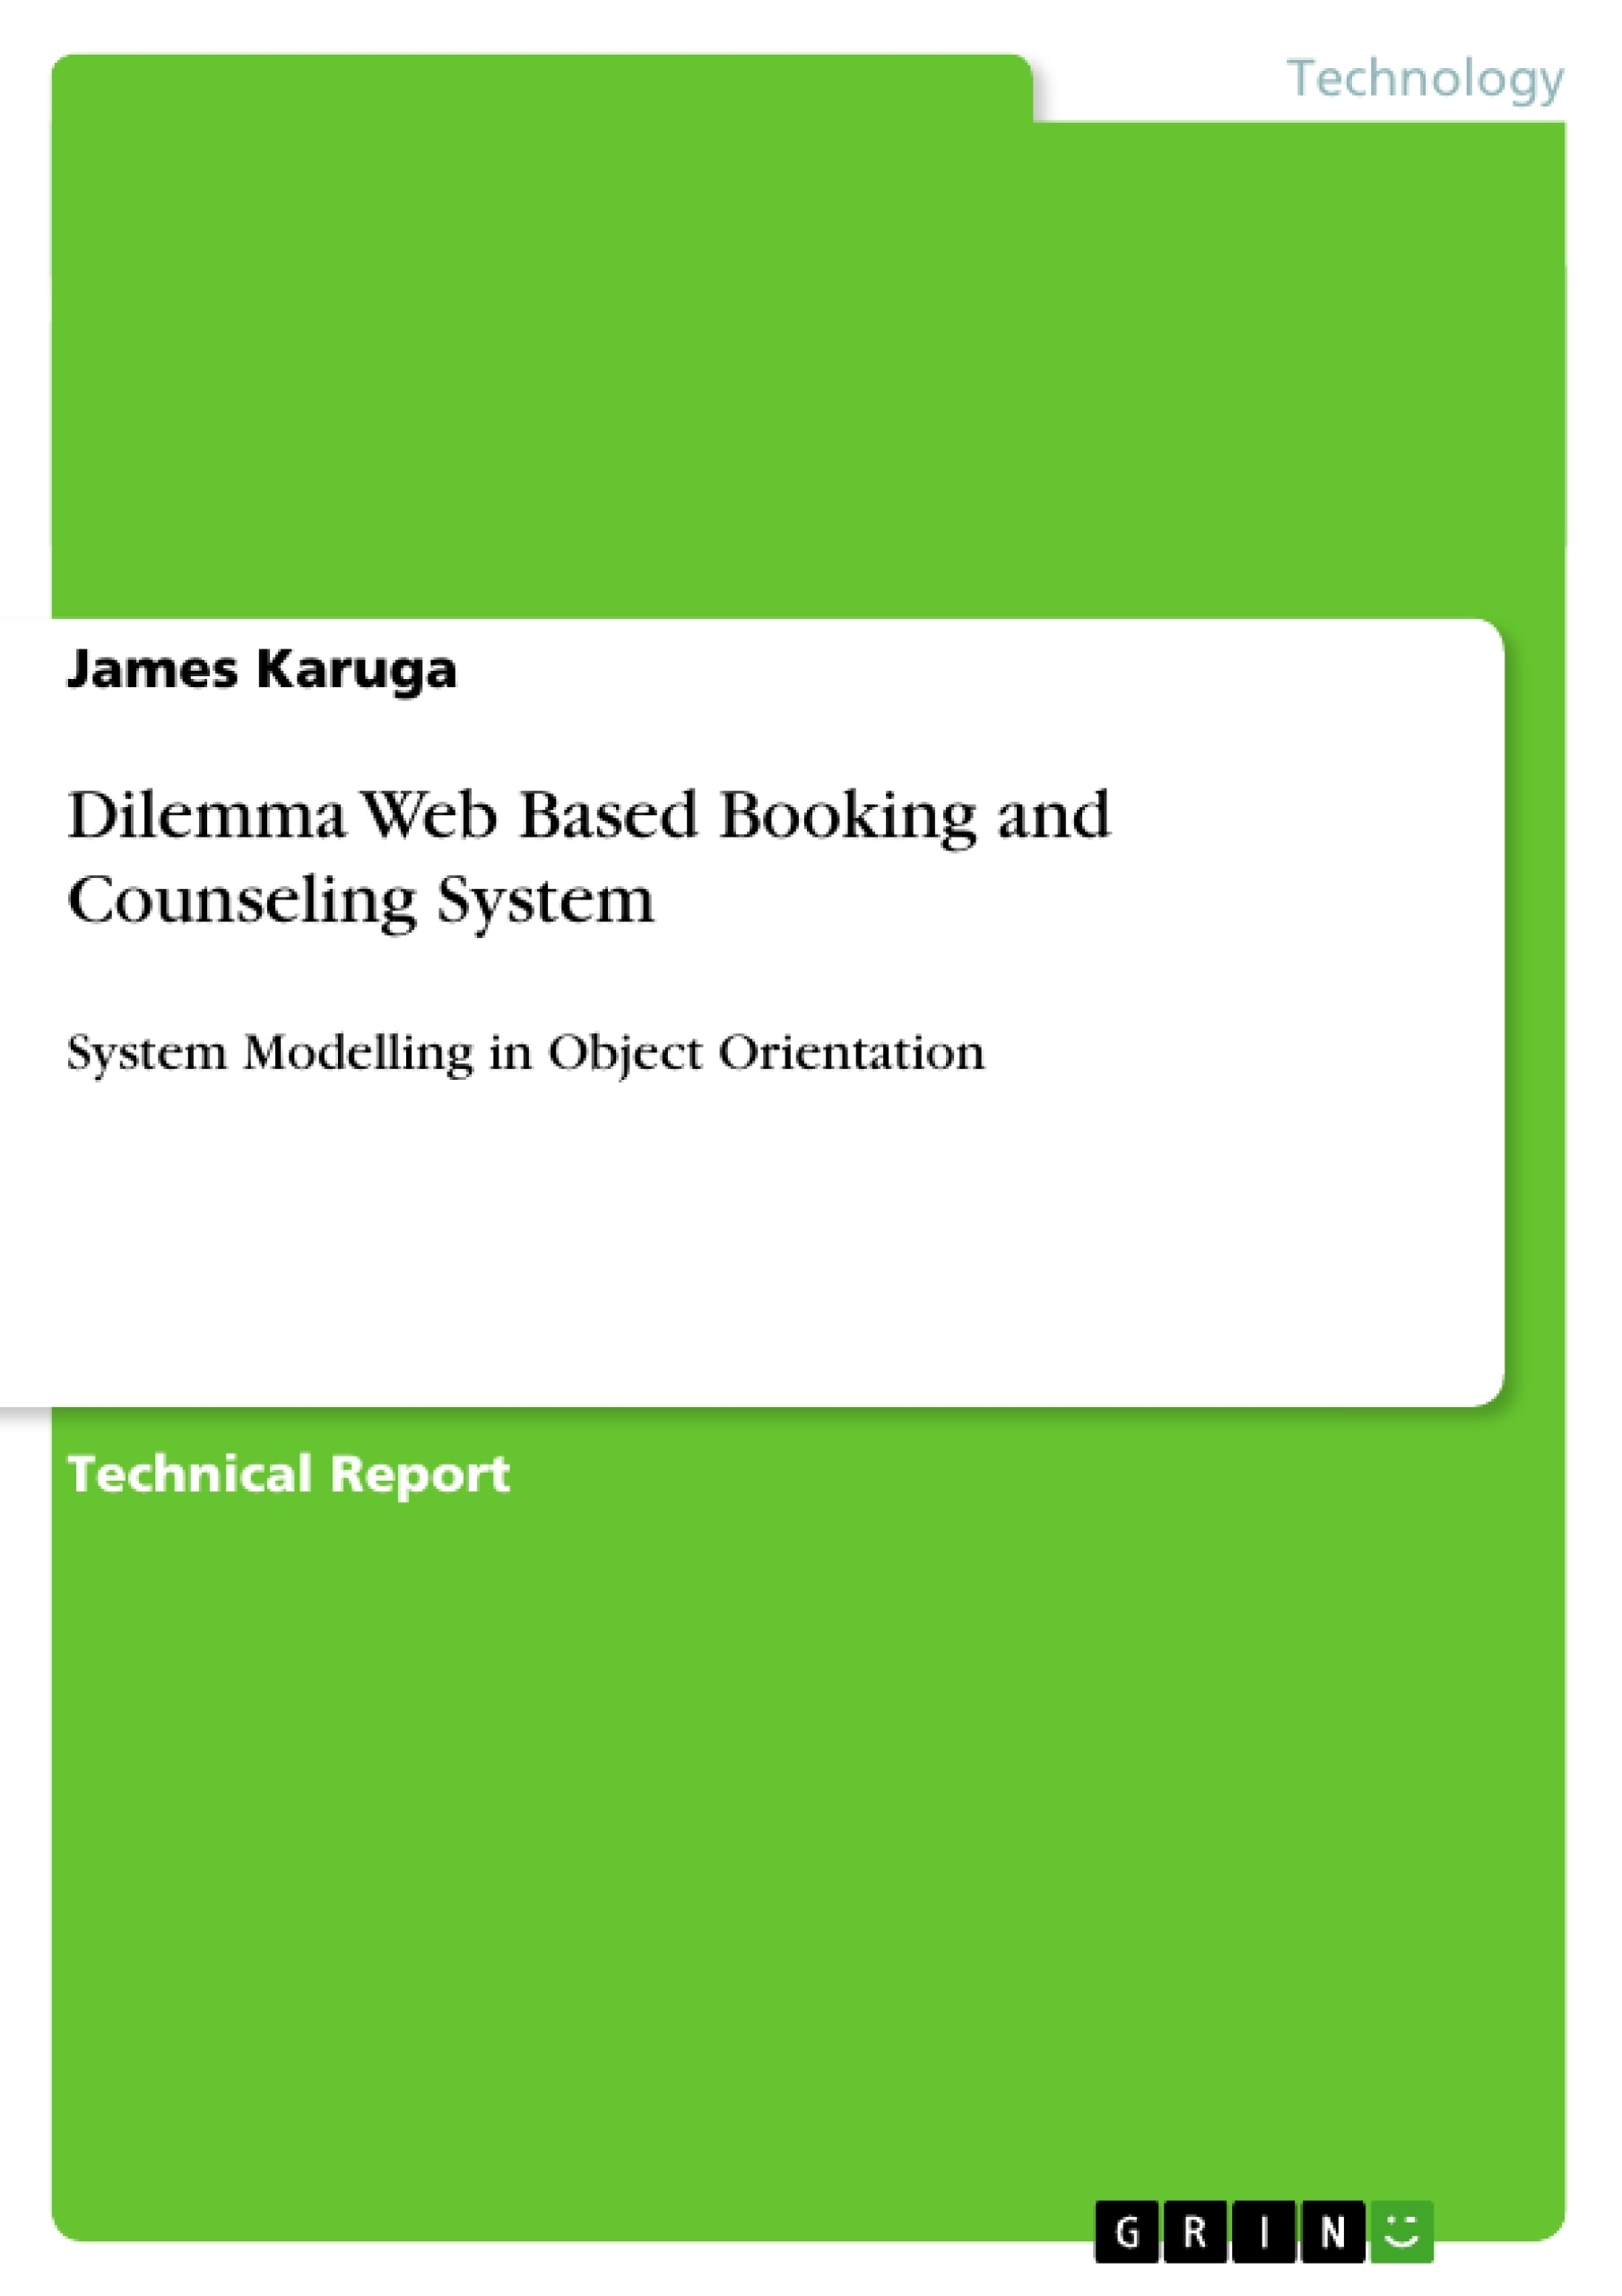 Title: Dilemma Web Based Booking and Counseling System